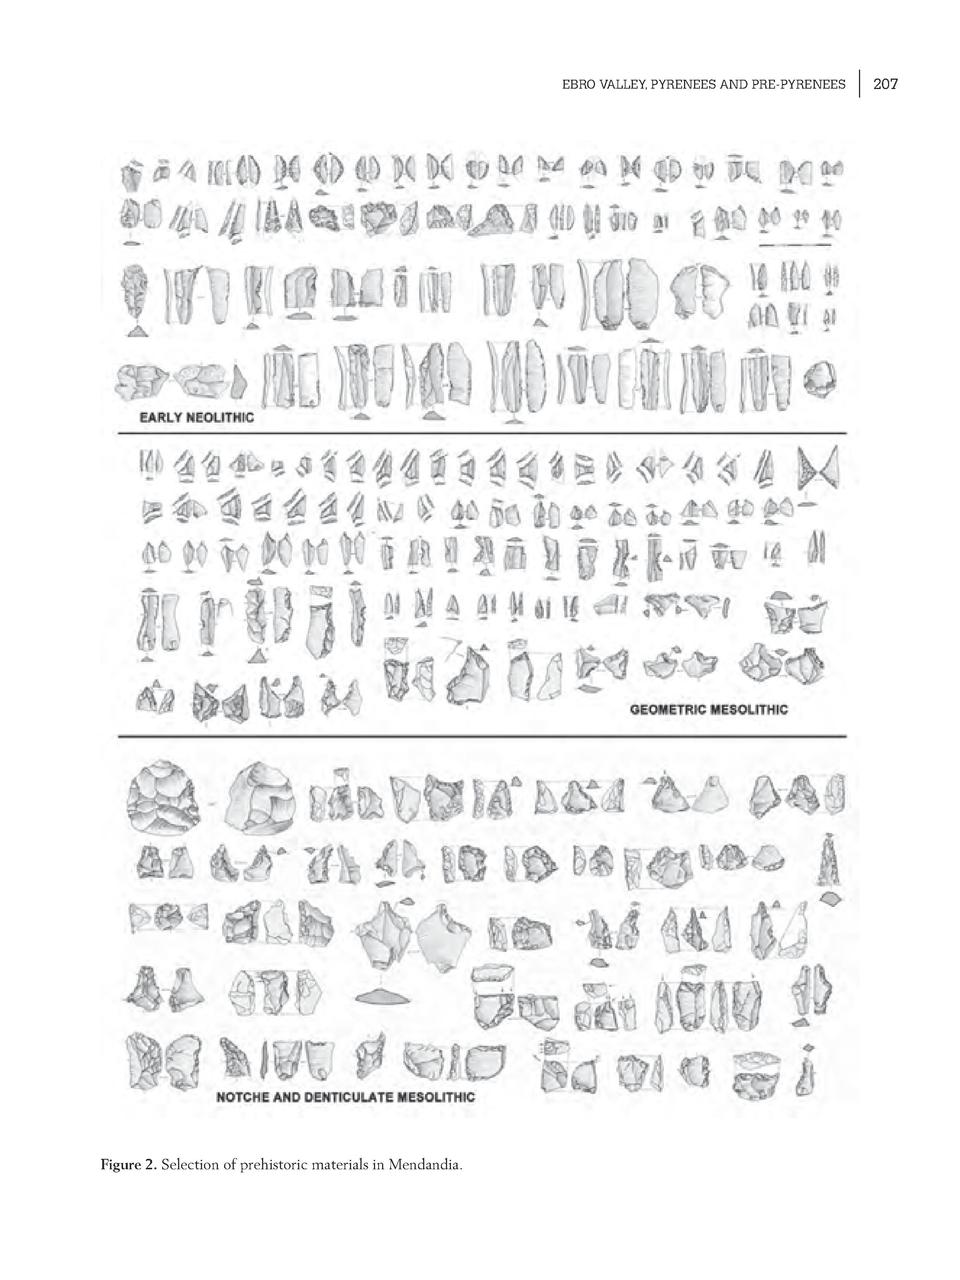 EBRO VALLEY, PYRENEES AND PRE-PYRENEES  Figure 2. Selection of prehistoric materials in Mendandia.  207